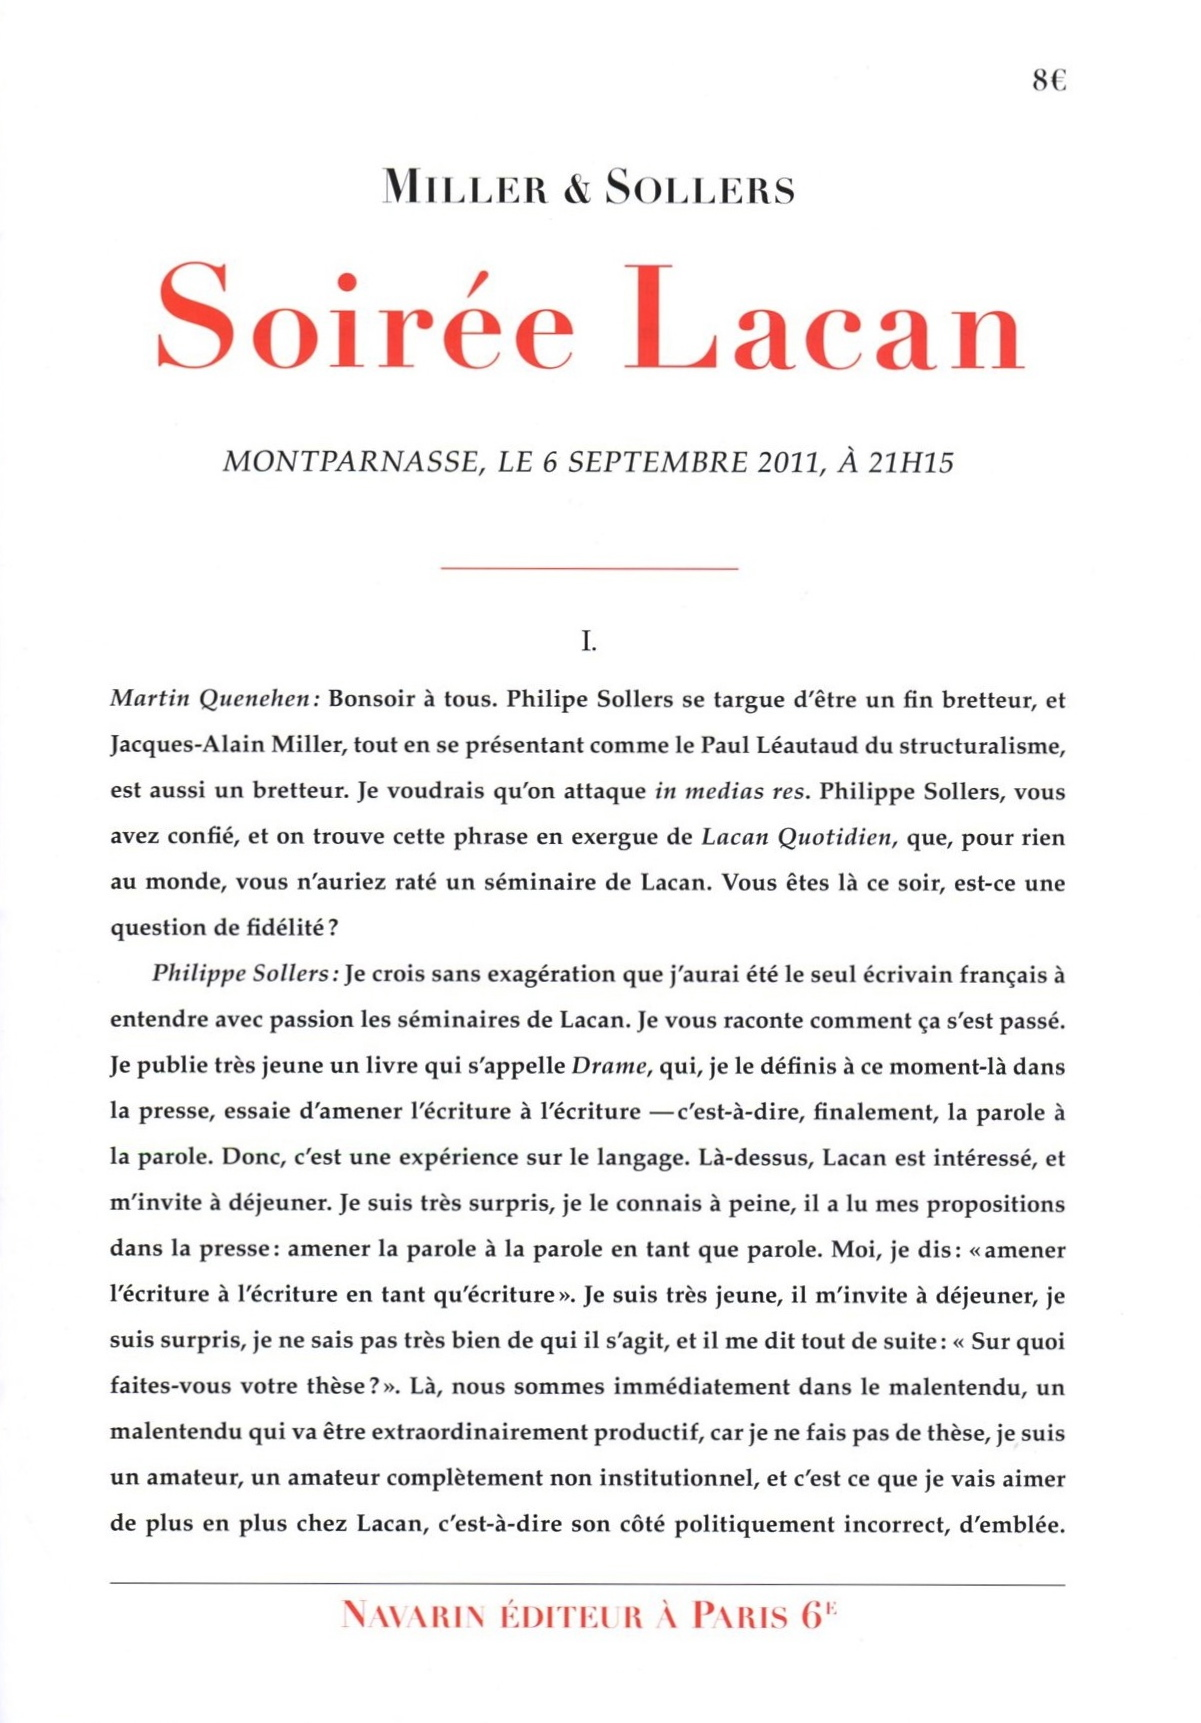 soiree-lacan_jacques-alain-miller-philippe-sollers